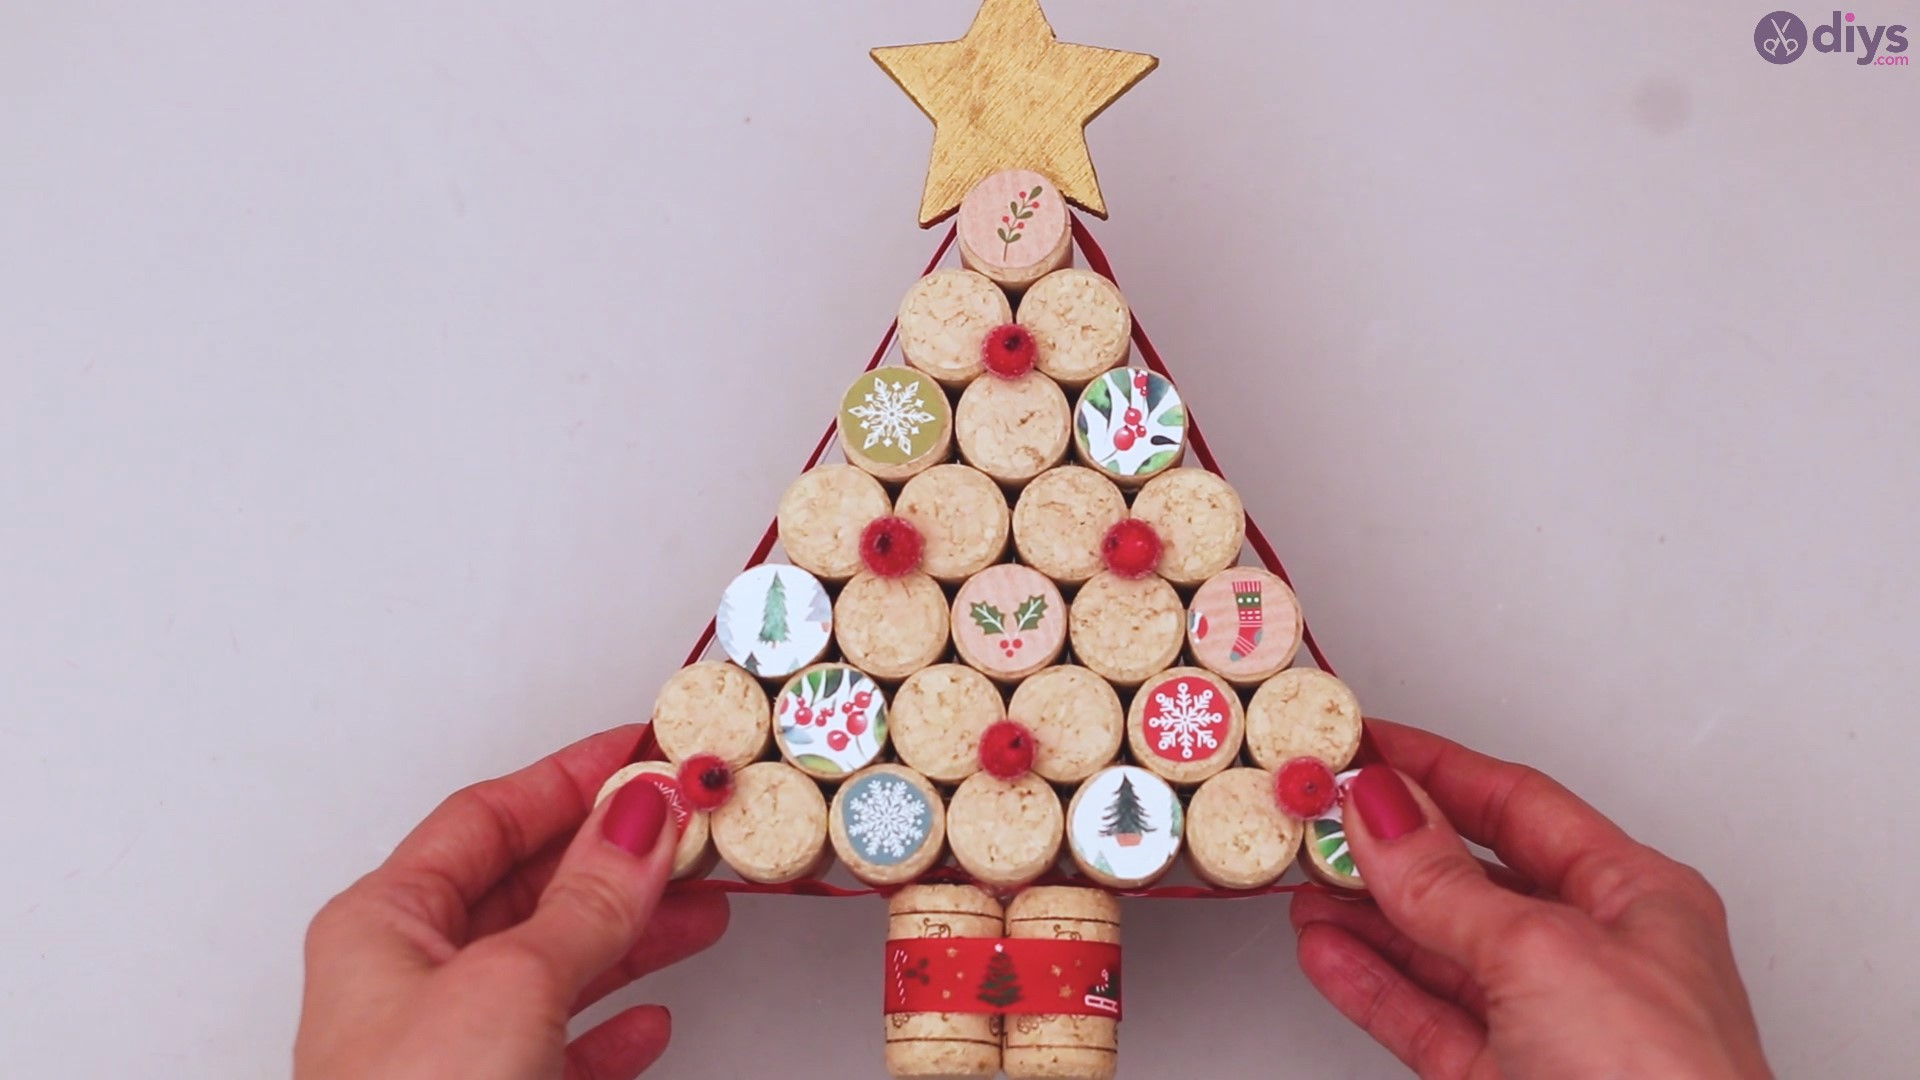 Diy wine cork christmas tree (61)